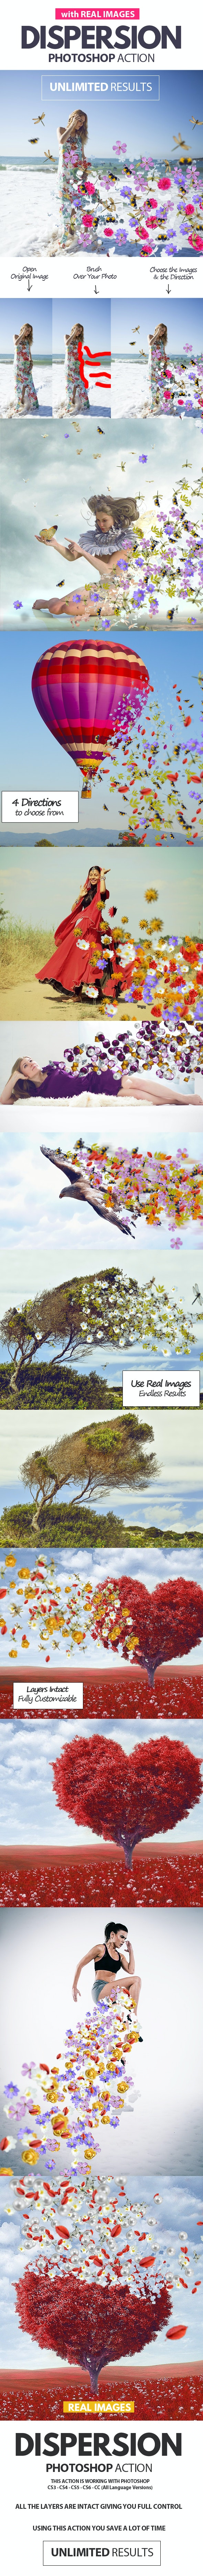 Dispersion with Real Images Photoshop Action - Photo Effects Actions